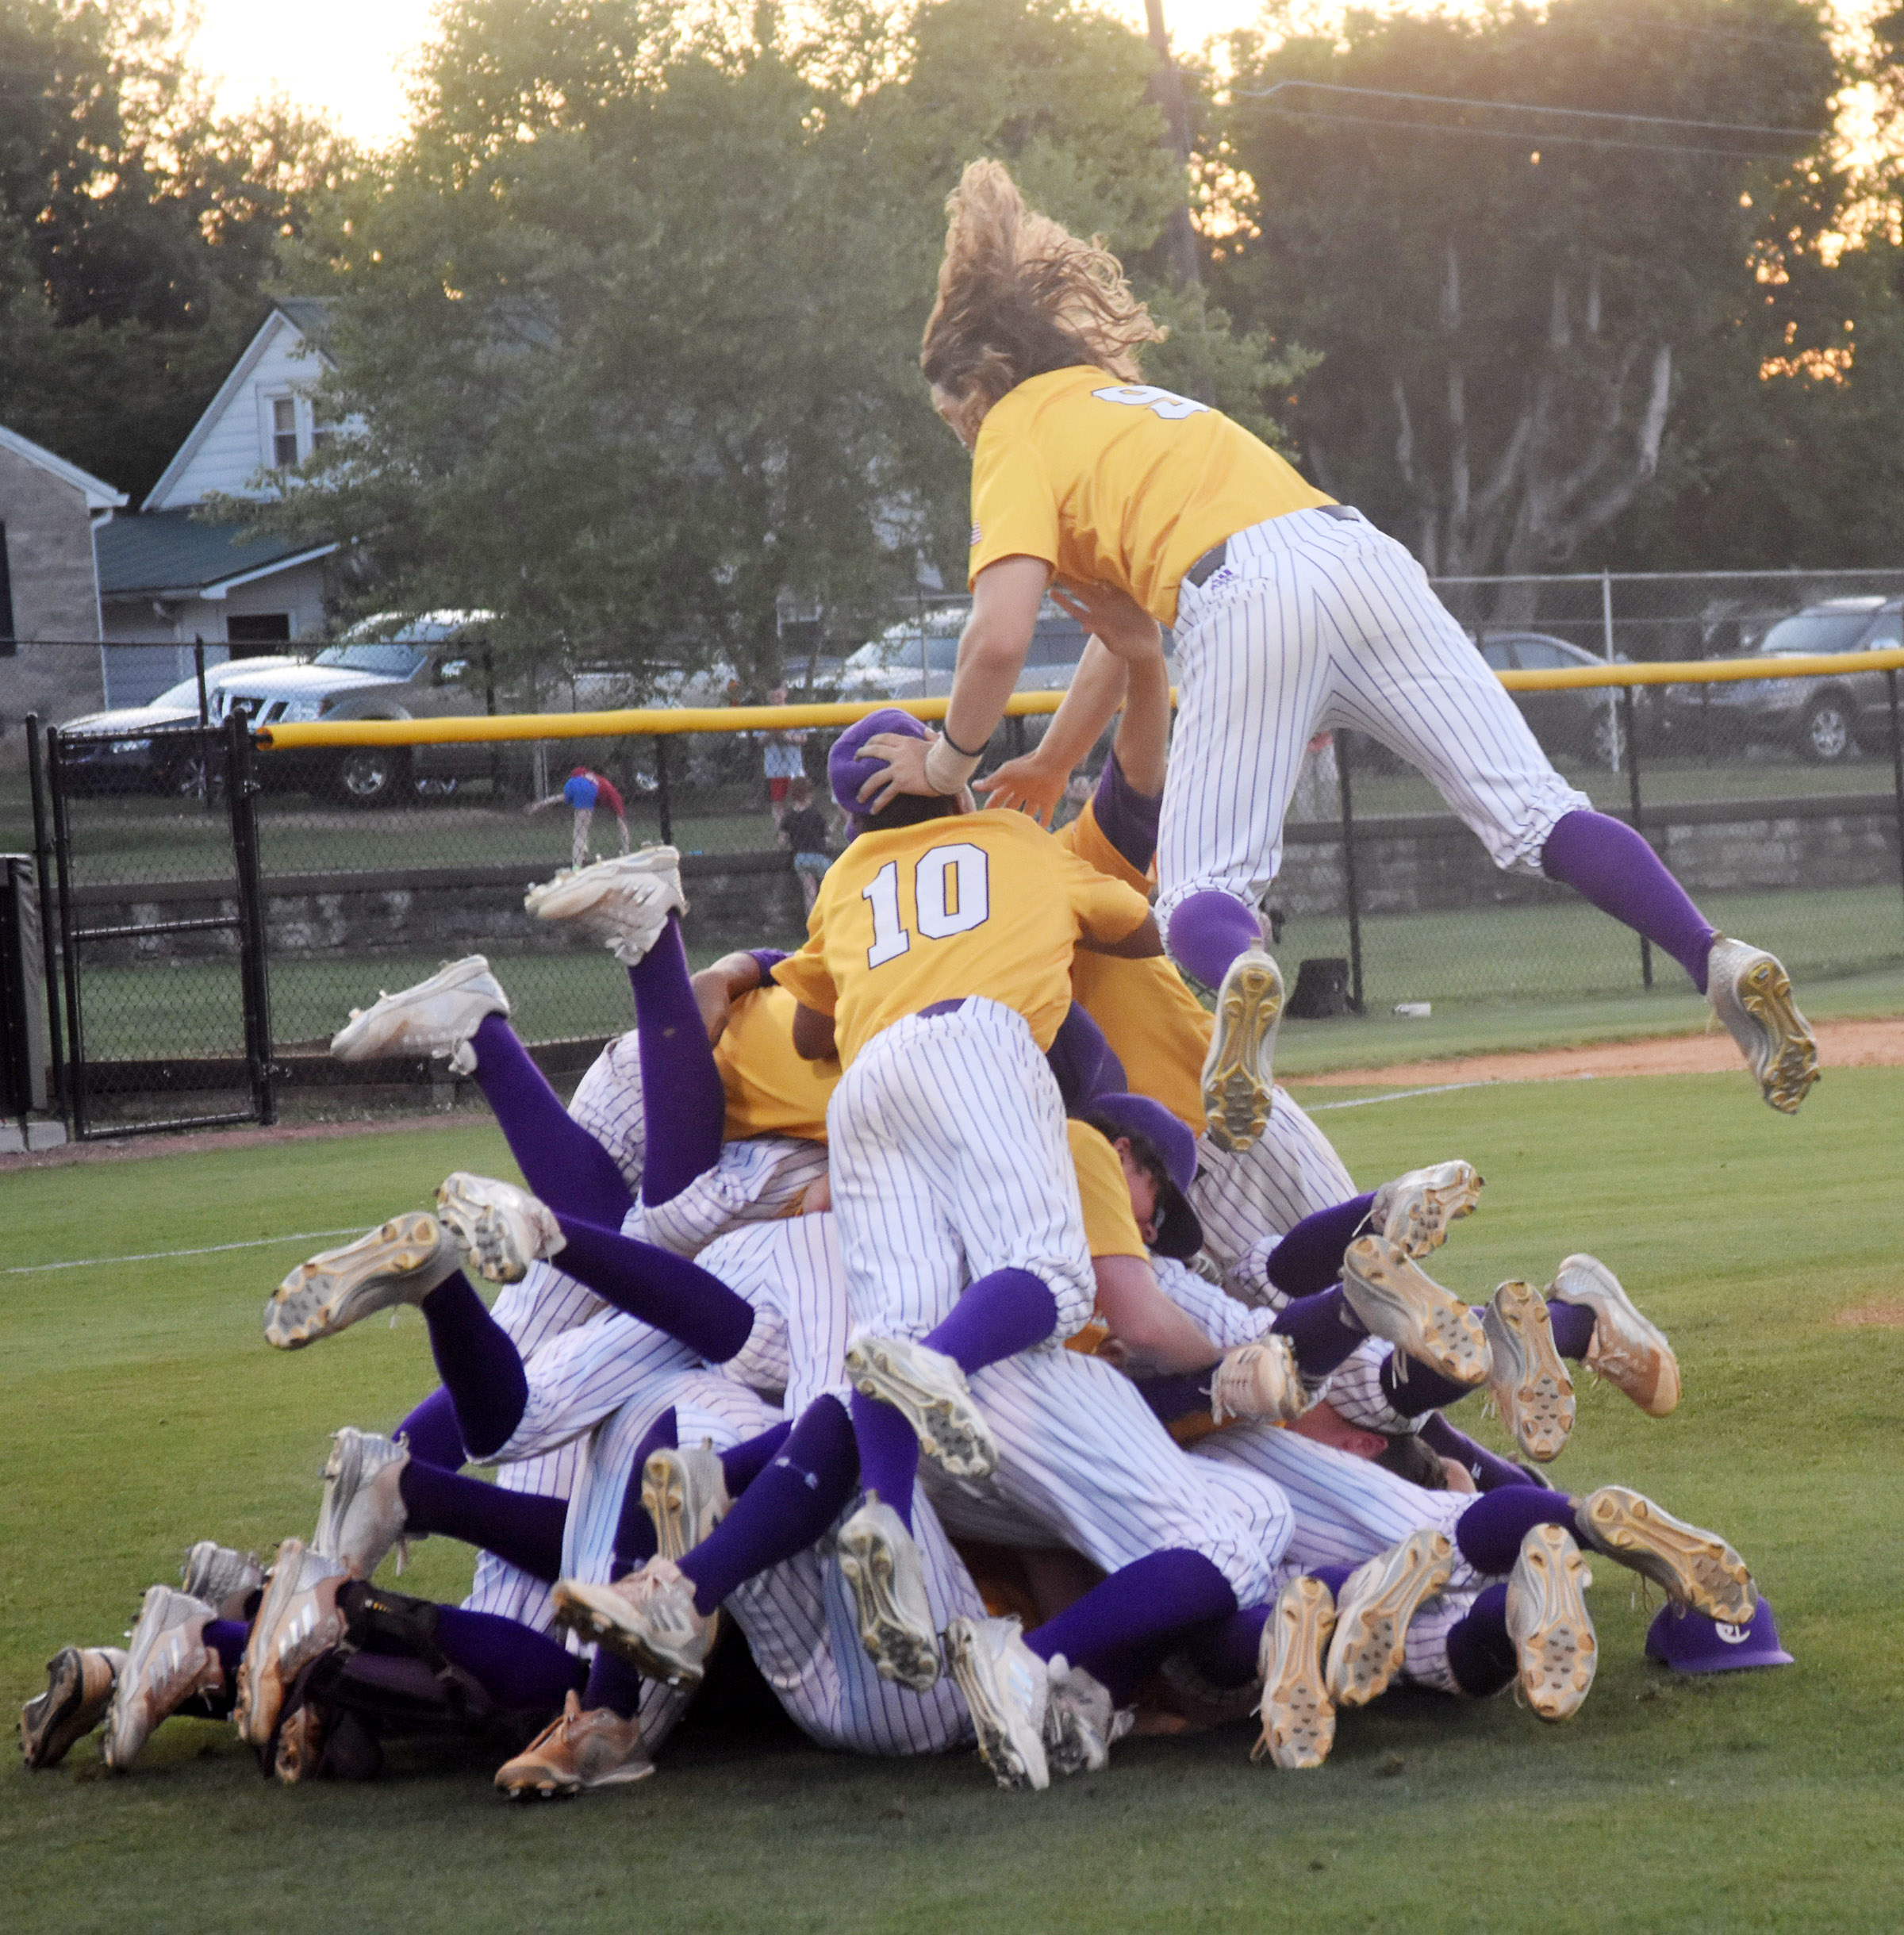 CHS junior Treyce Mattingly jumps atop a pile of players after his team wins the 20th District championship.